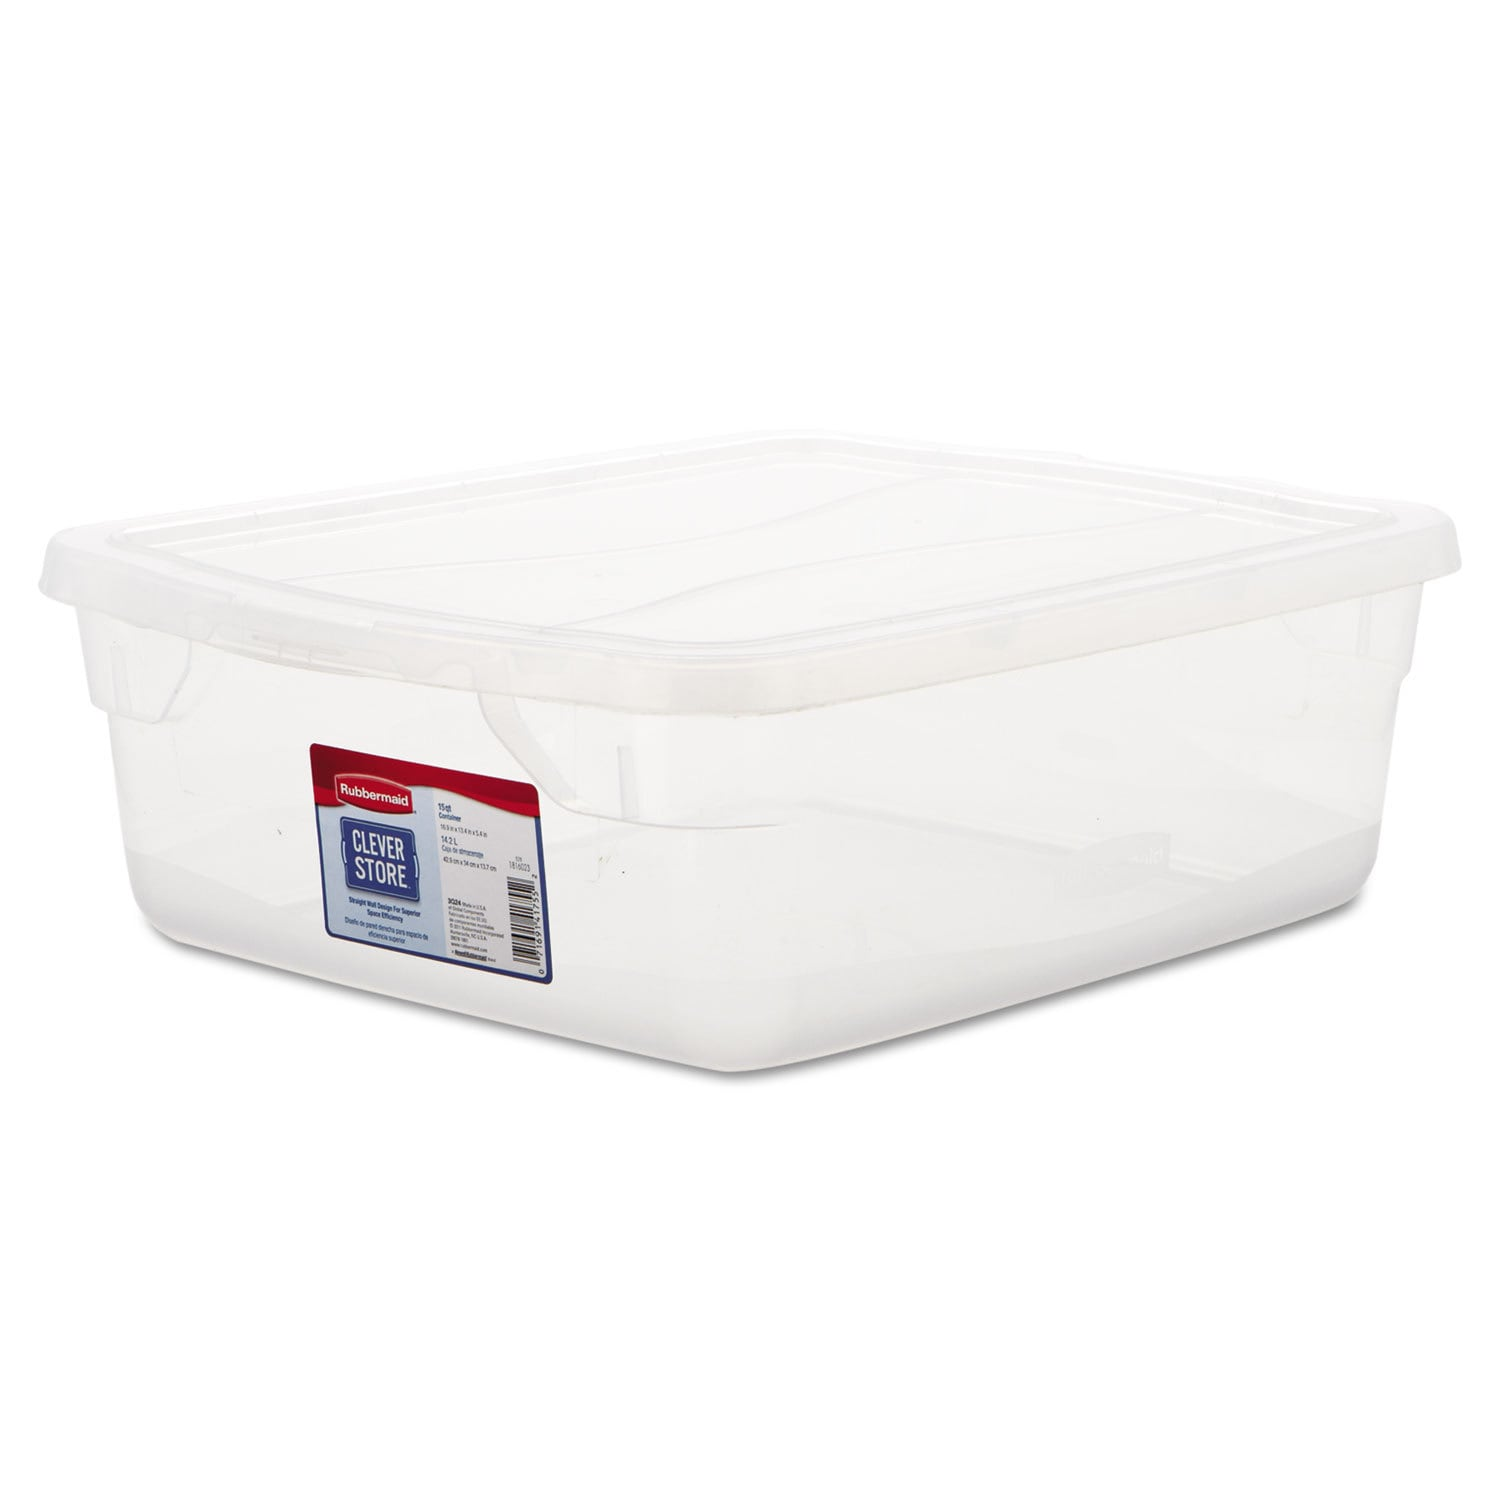 Rubbermaid Clever Store Clear Snap-Lid Container (Clear) ...